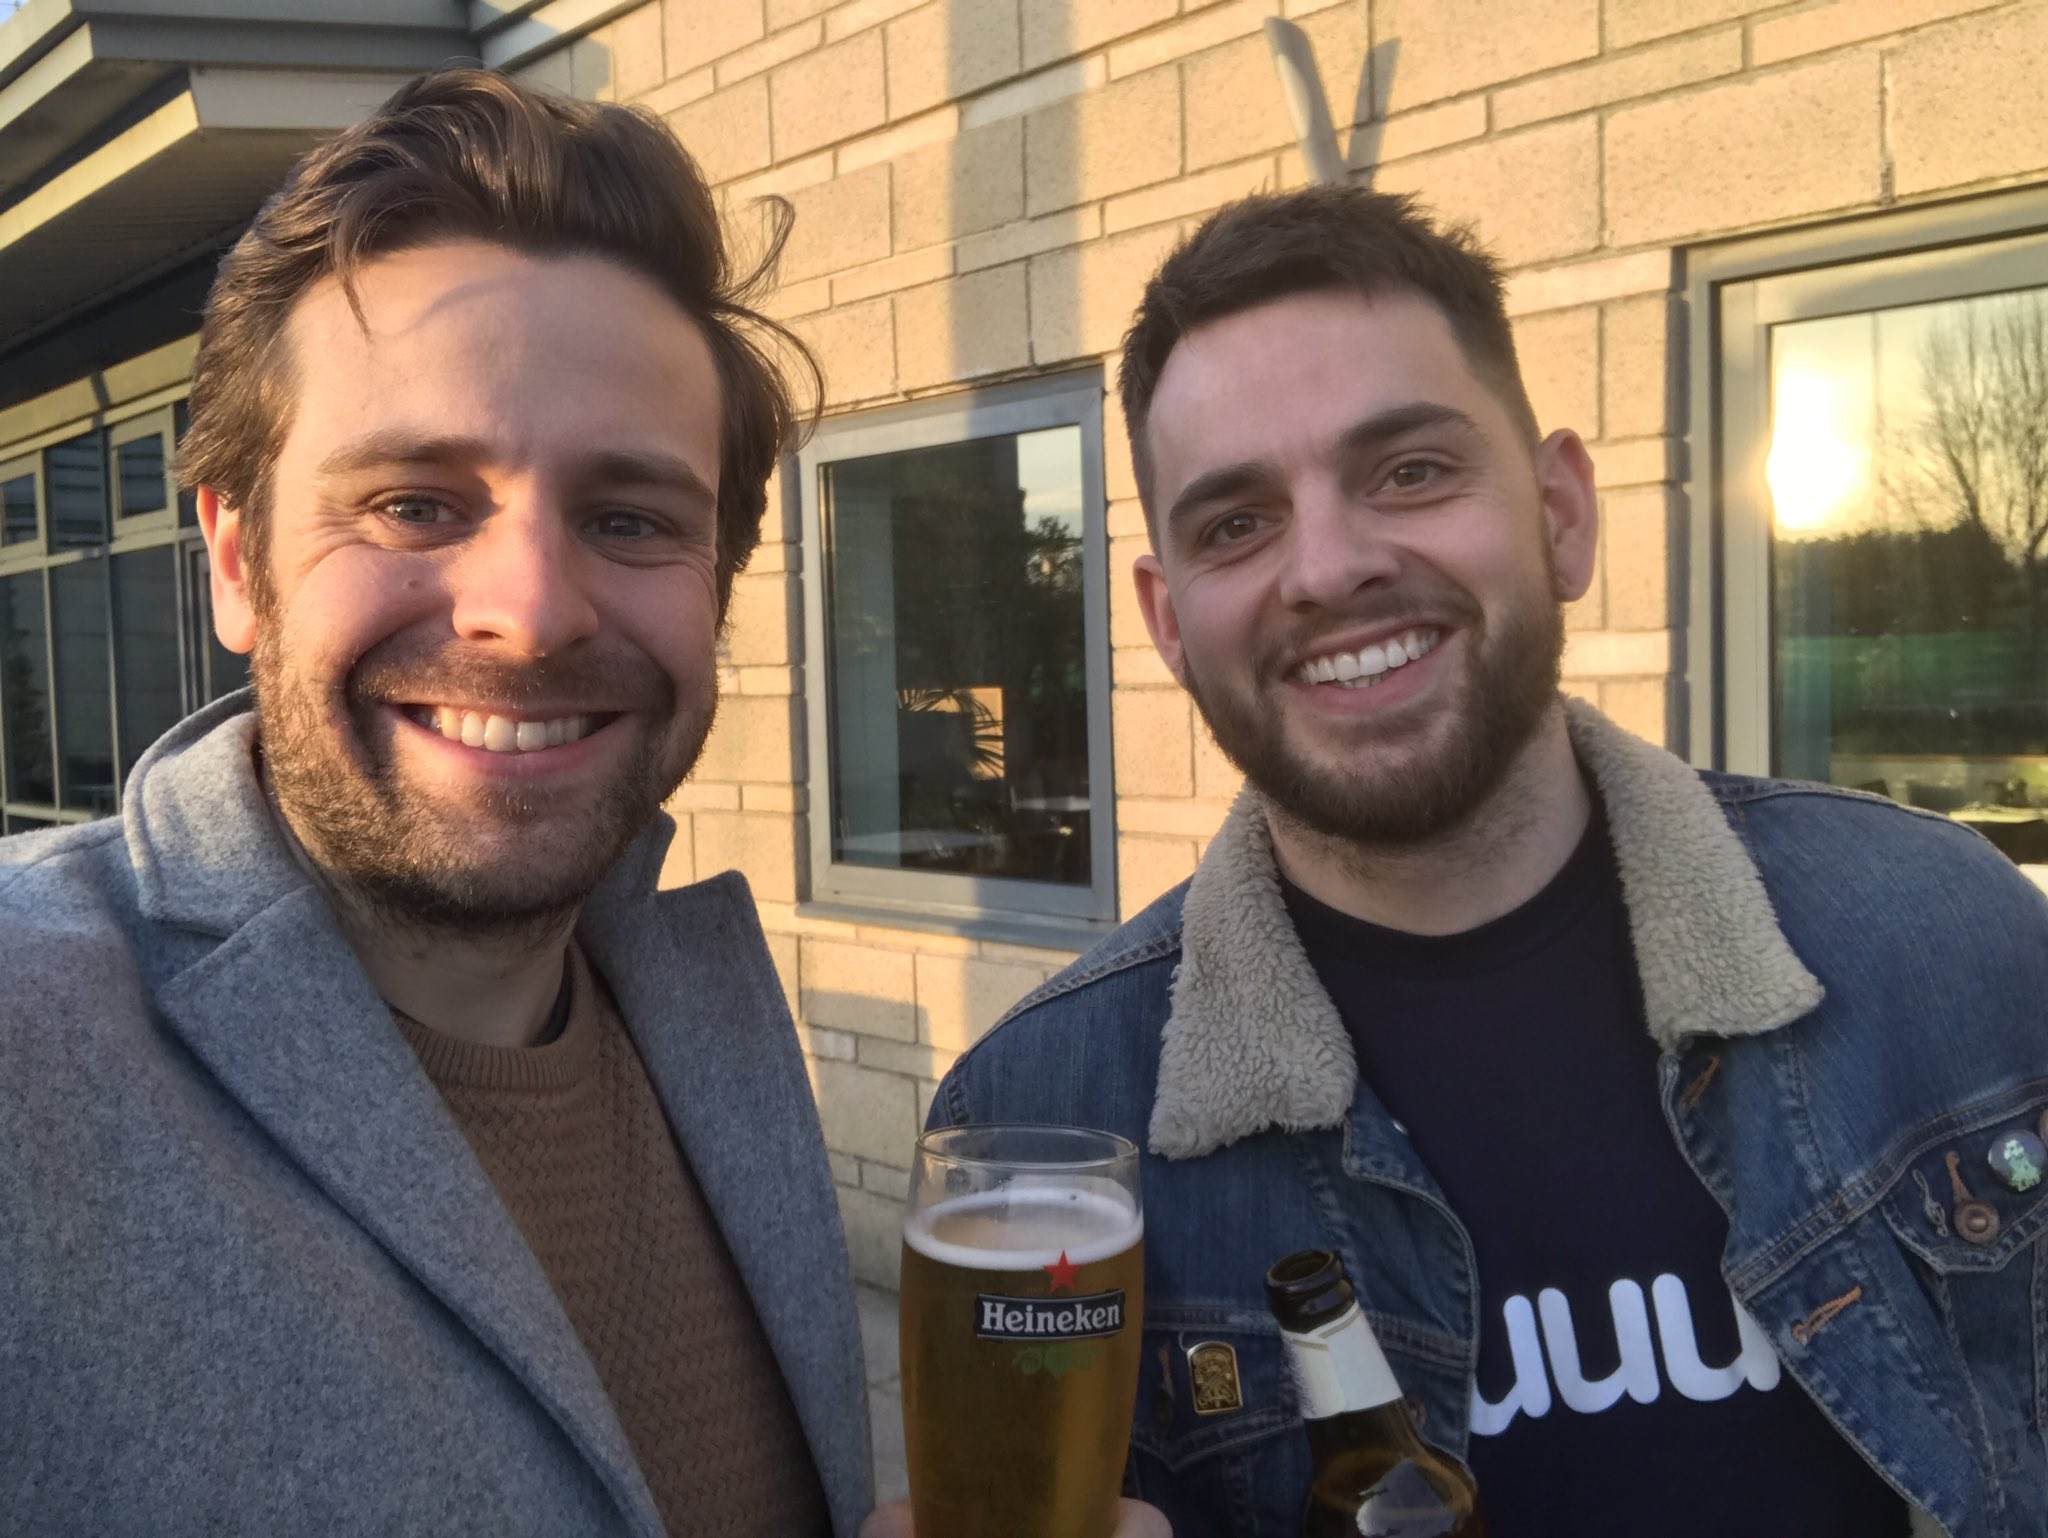 @quuu_co #qchat me and @samcambridge are in Bristol. We've paused our meeting to join in https://t.co/uH33aLeqZG